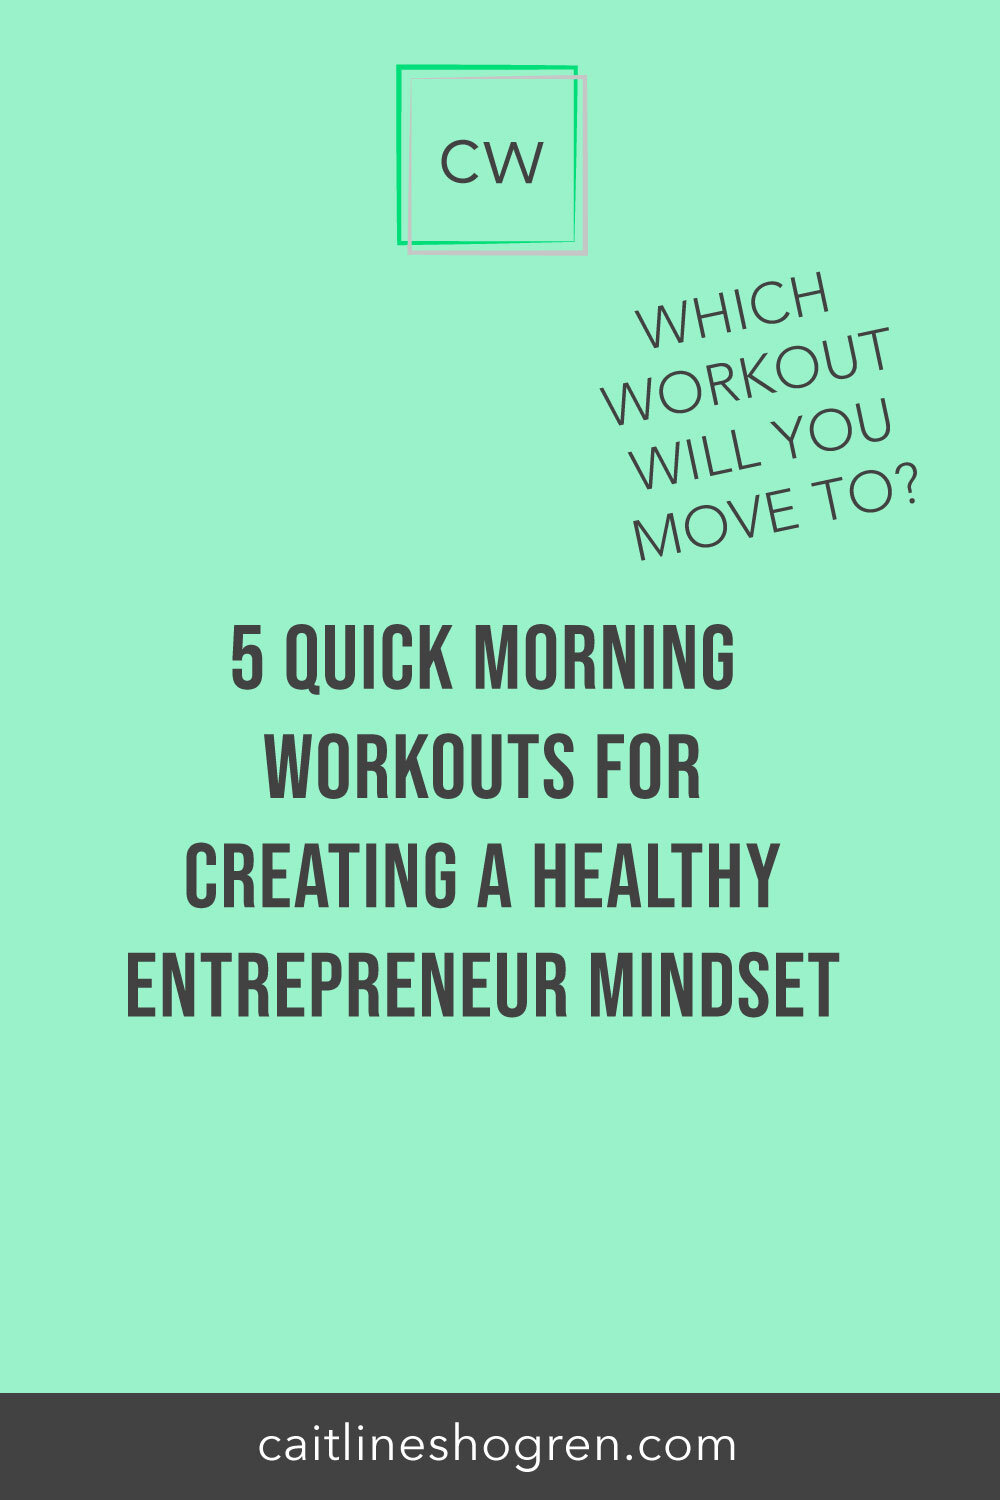 quick-morning-workouts4.jpg